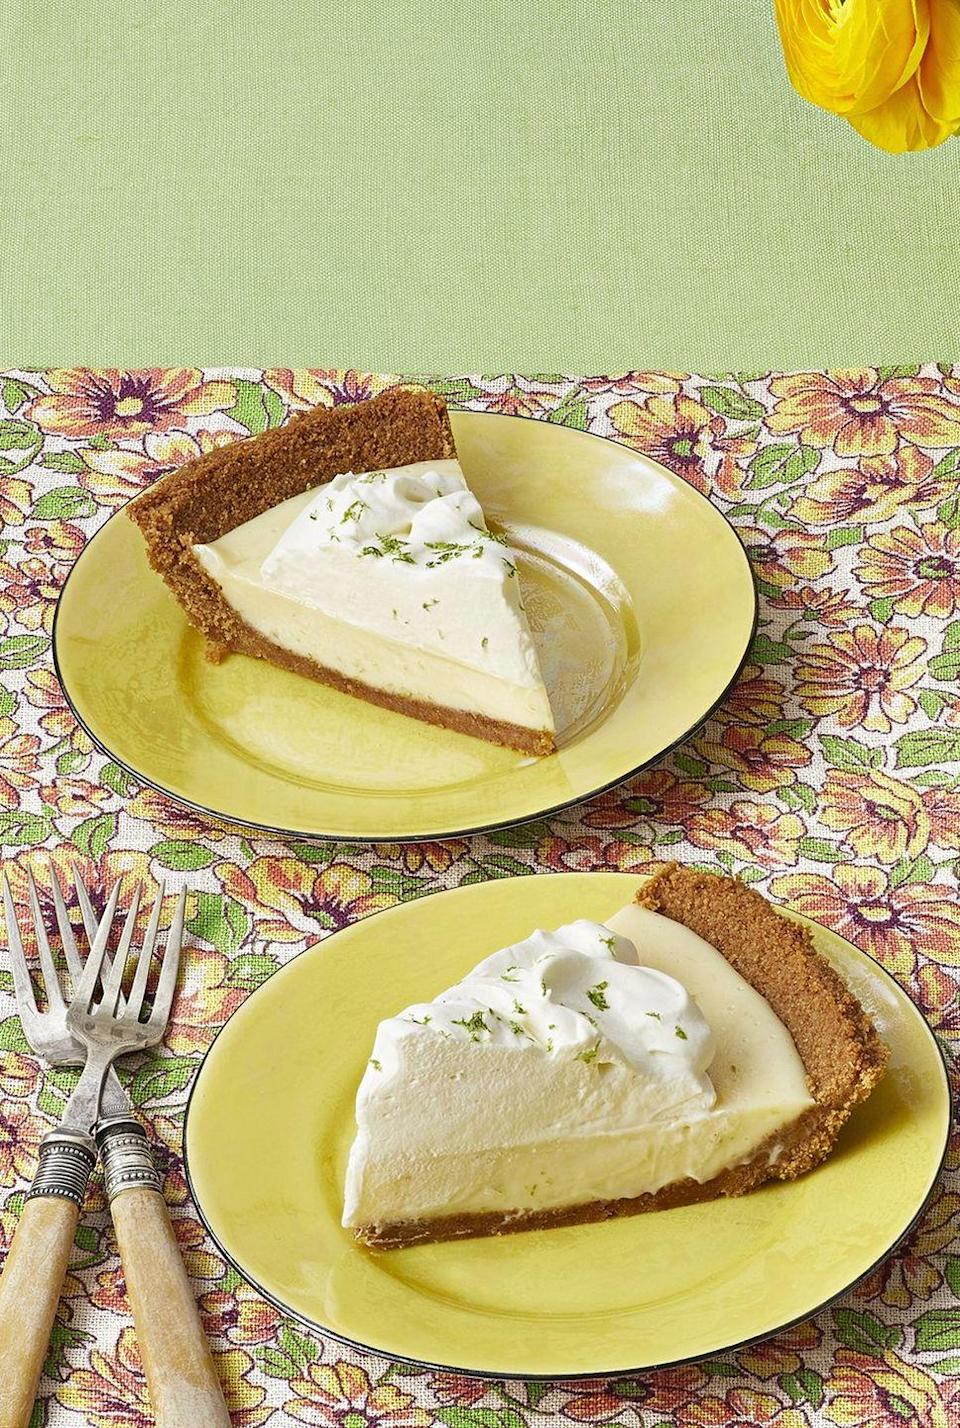 """<p>This make-ahead pie is best served chilled, so it's perfect for those hot days of summer. It's bright, creamy and packed with citrus-y flavor. </p><p><a href=""""https://www.thepioneerwoman.com/food-cooking/recipes/a32972780/classic-key-lime-pie-recipe/"""" rel=""""nofollow noopener"""" target=""""_blank"""" data-ylk=""""slk:Get Ree's recipe."""" class=""""link rapid-noclick-resp""""><strong>Get Ree's recipe. </strong></a></p><p><a class=""""link rapid-noclick-resp"""" href=""""https://go.redirectingat.com?id=74968X1596630&url=https%3A%2F%2Fwww.walmart.com%2Fsearch%2F%3Fquery%3Dfood%2Bprocessor&sref=https%3A%2F%2Fwww.thepioneerwoman.com%2Ffood-cooking%2Fmeals-menus%2Fg36558208%2Fsummer-pie-recipes%2F"""" rel=""""nofollow noopener"""" target=""""_blank"""" data-ylk=""""slk:SHOP FOOD PROCESSORS"""">SHOP FOOD PROCESSORS</a></p>"""